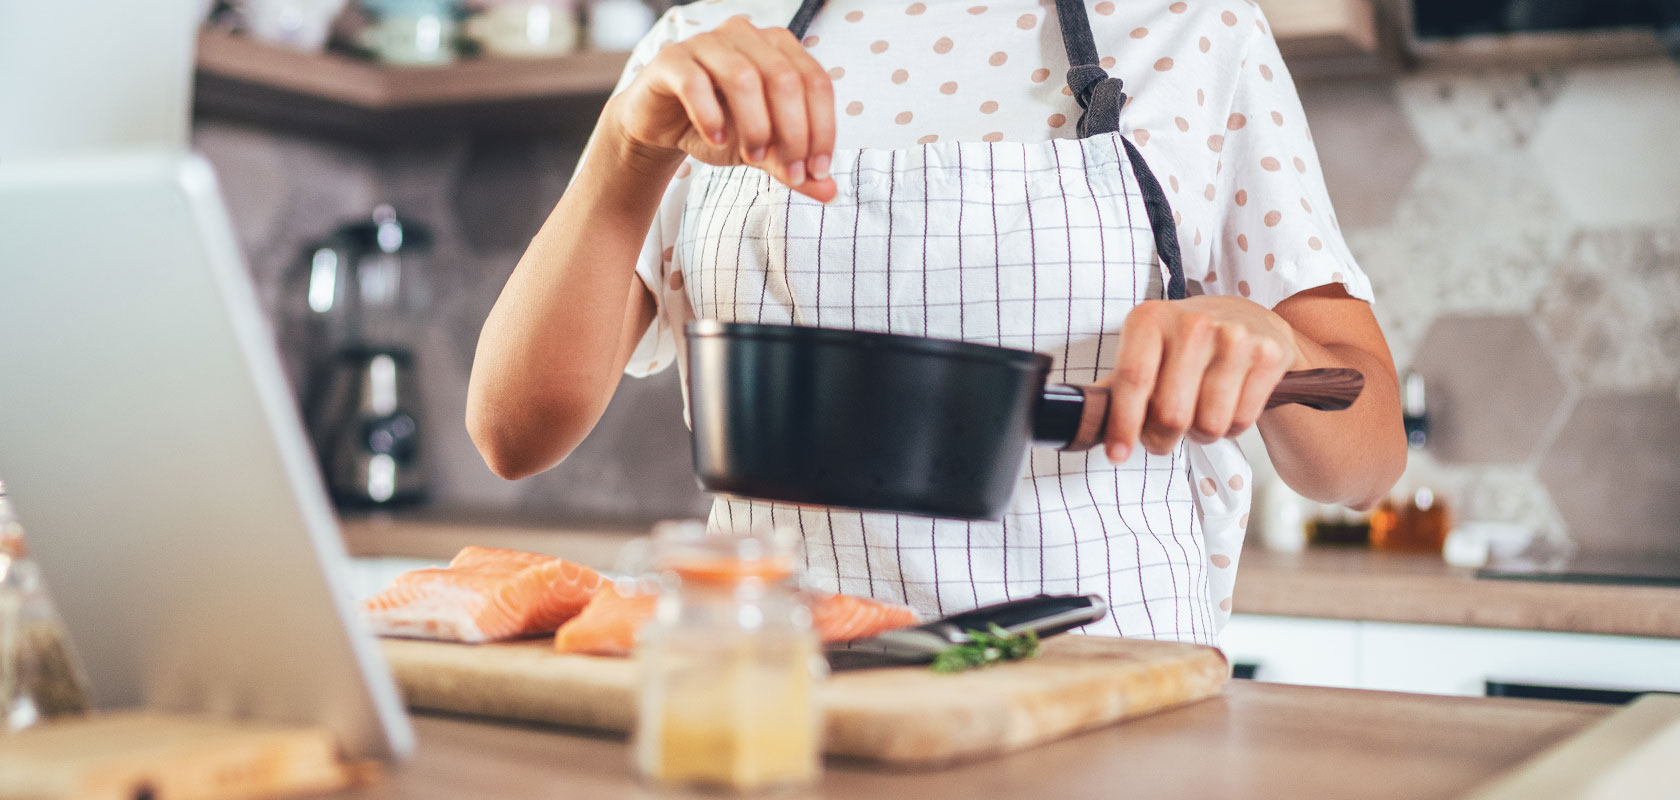 Sur La Table Online Culinary Institute, chef with white apron and ipad in the kitchen